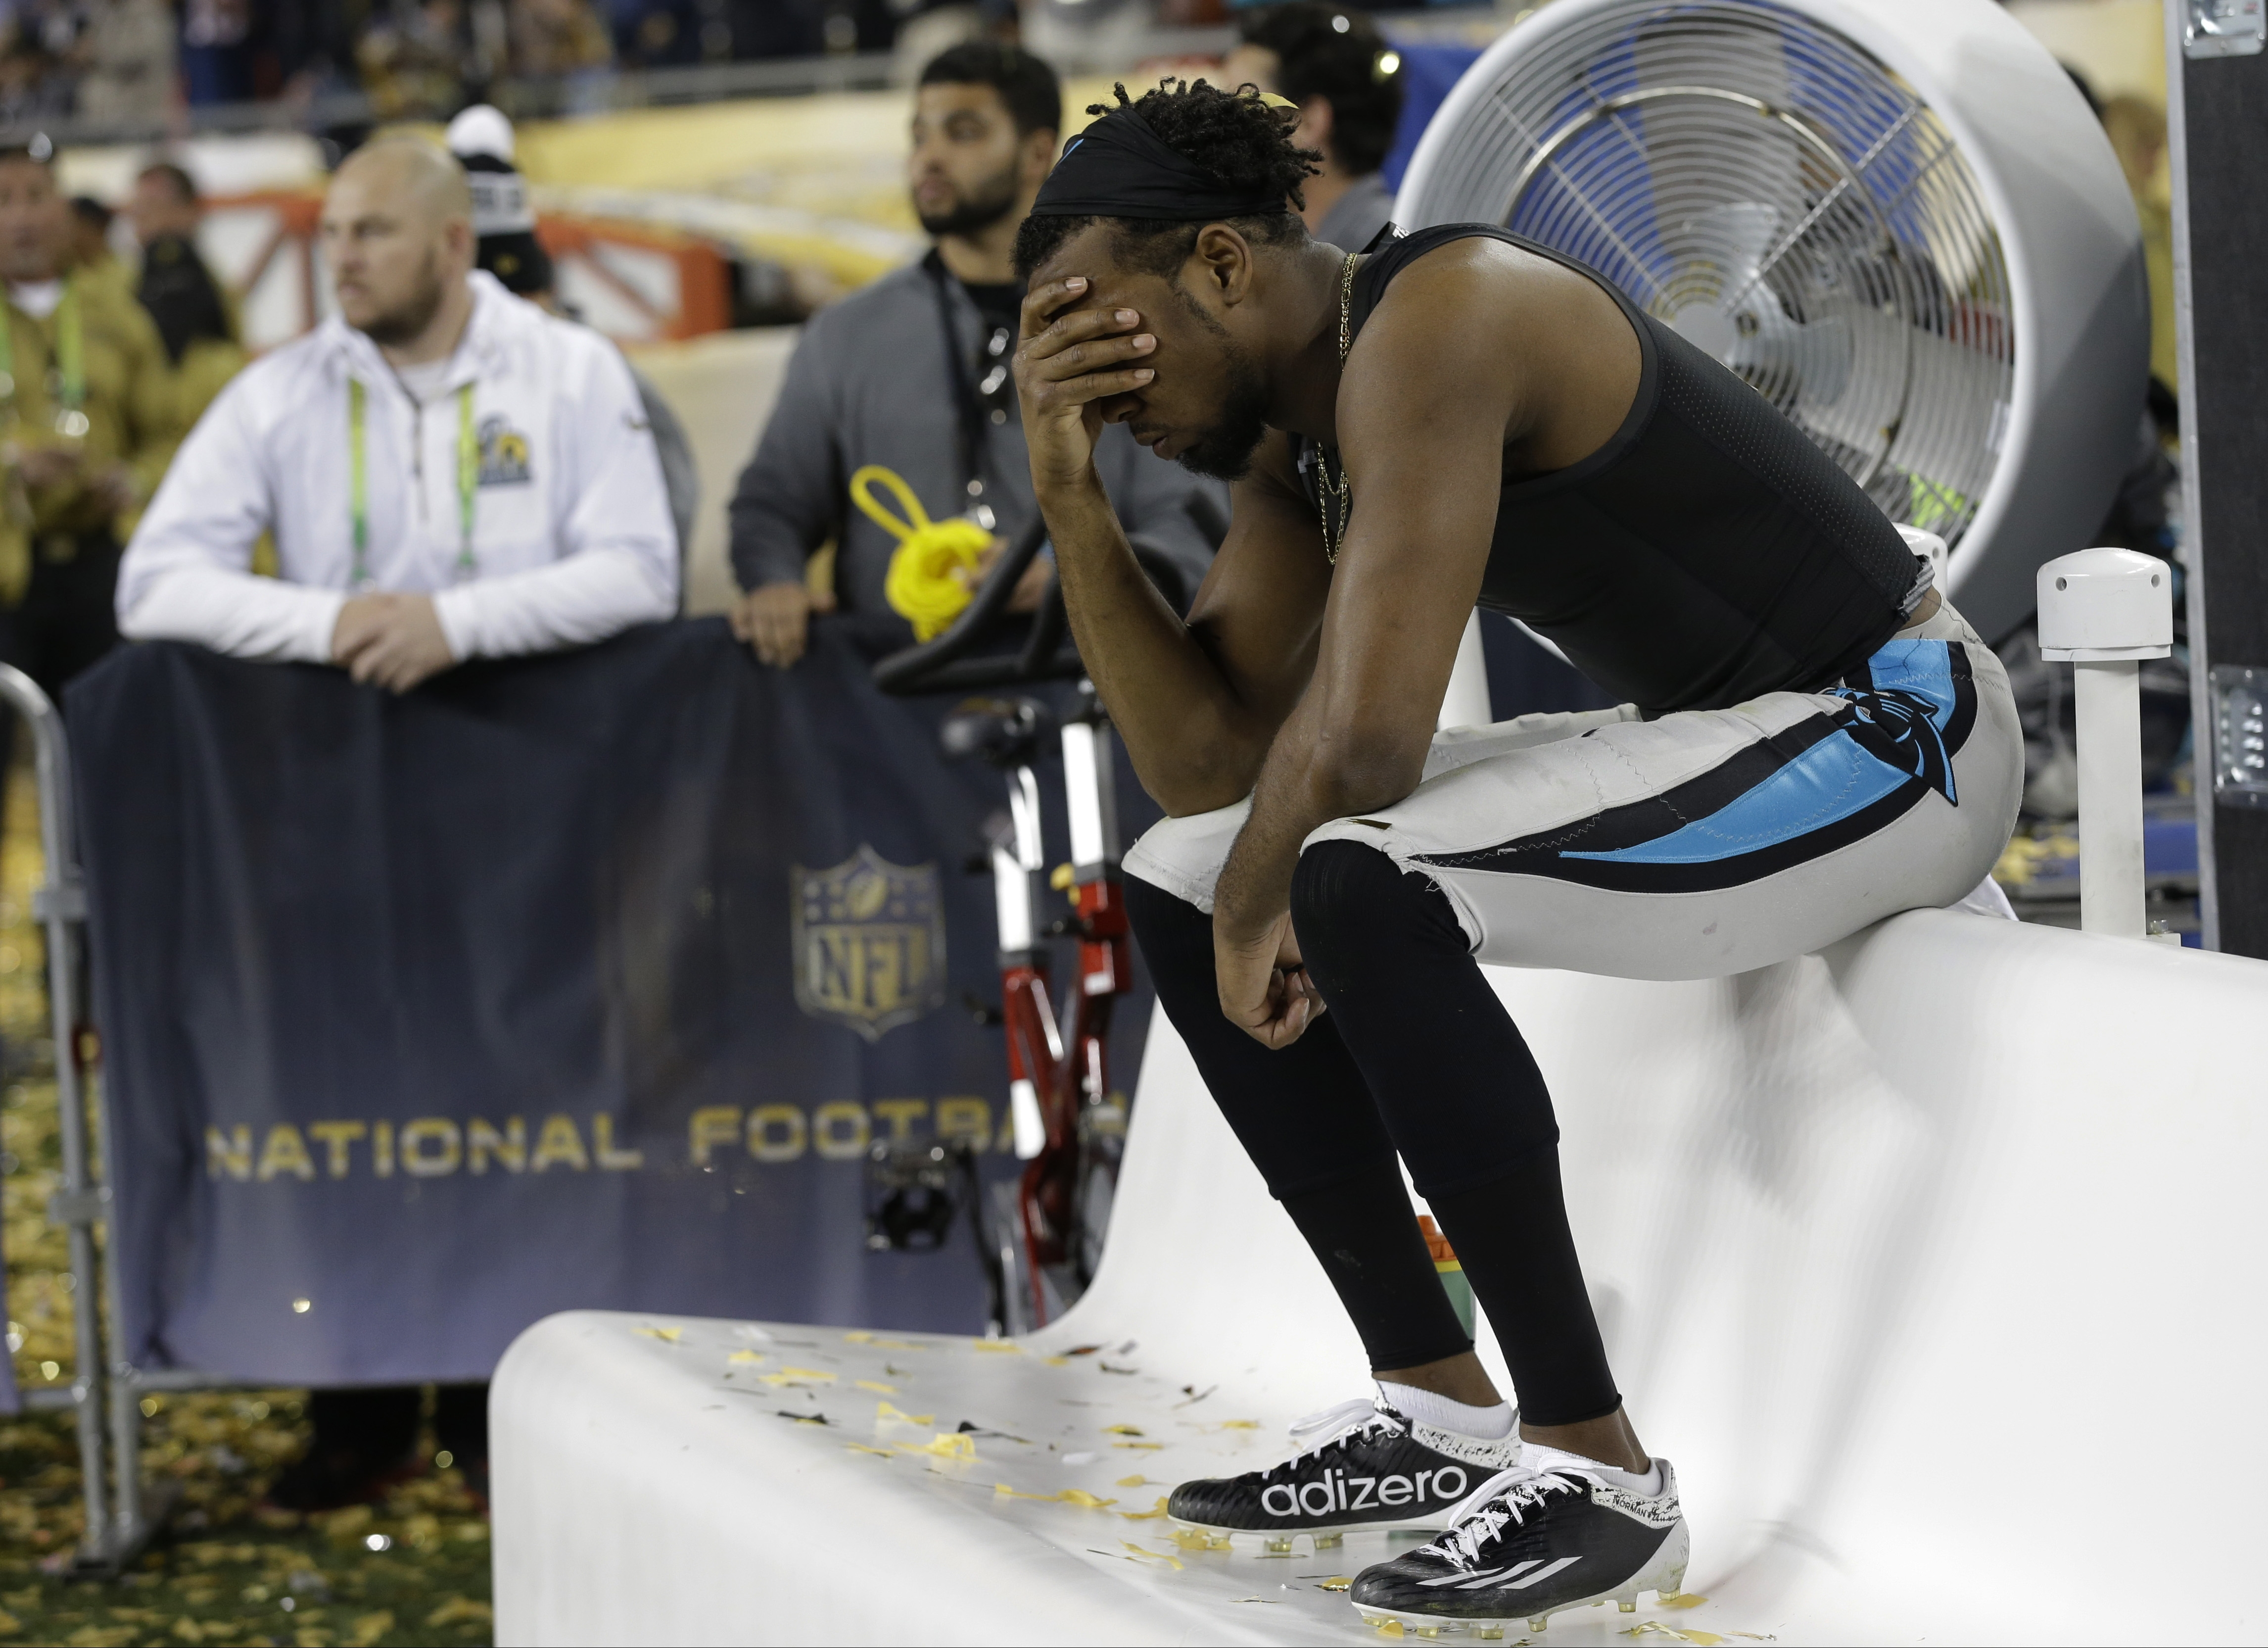 Carolina Panthers' Josh Norman (24) sits on the bench after the NFL Super Bowl 50 football game against the Denver Broncos Sunday in Santa Clara, Calif., on Feb. 7, 2016.